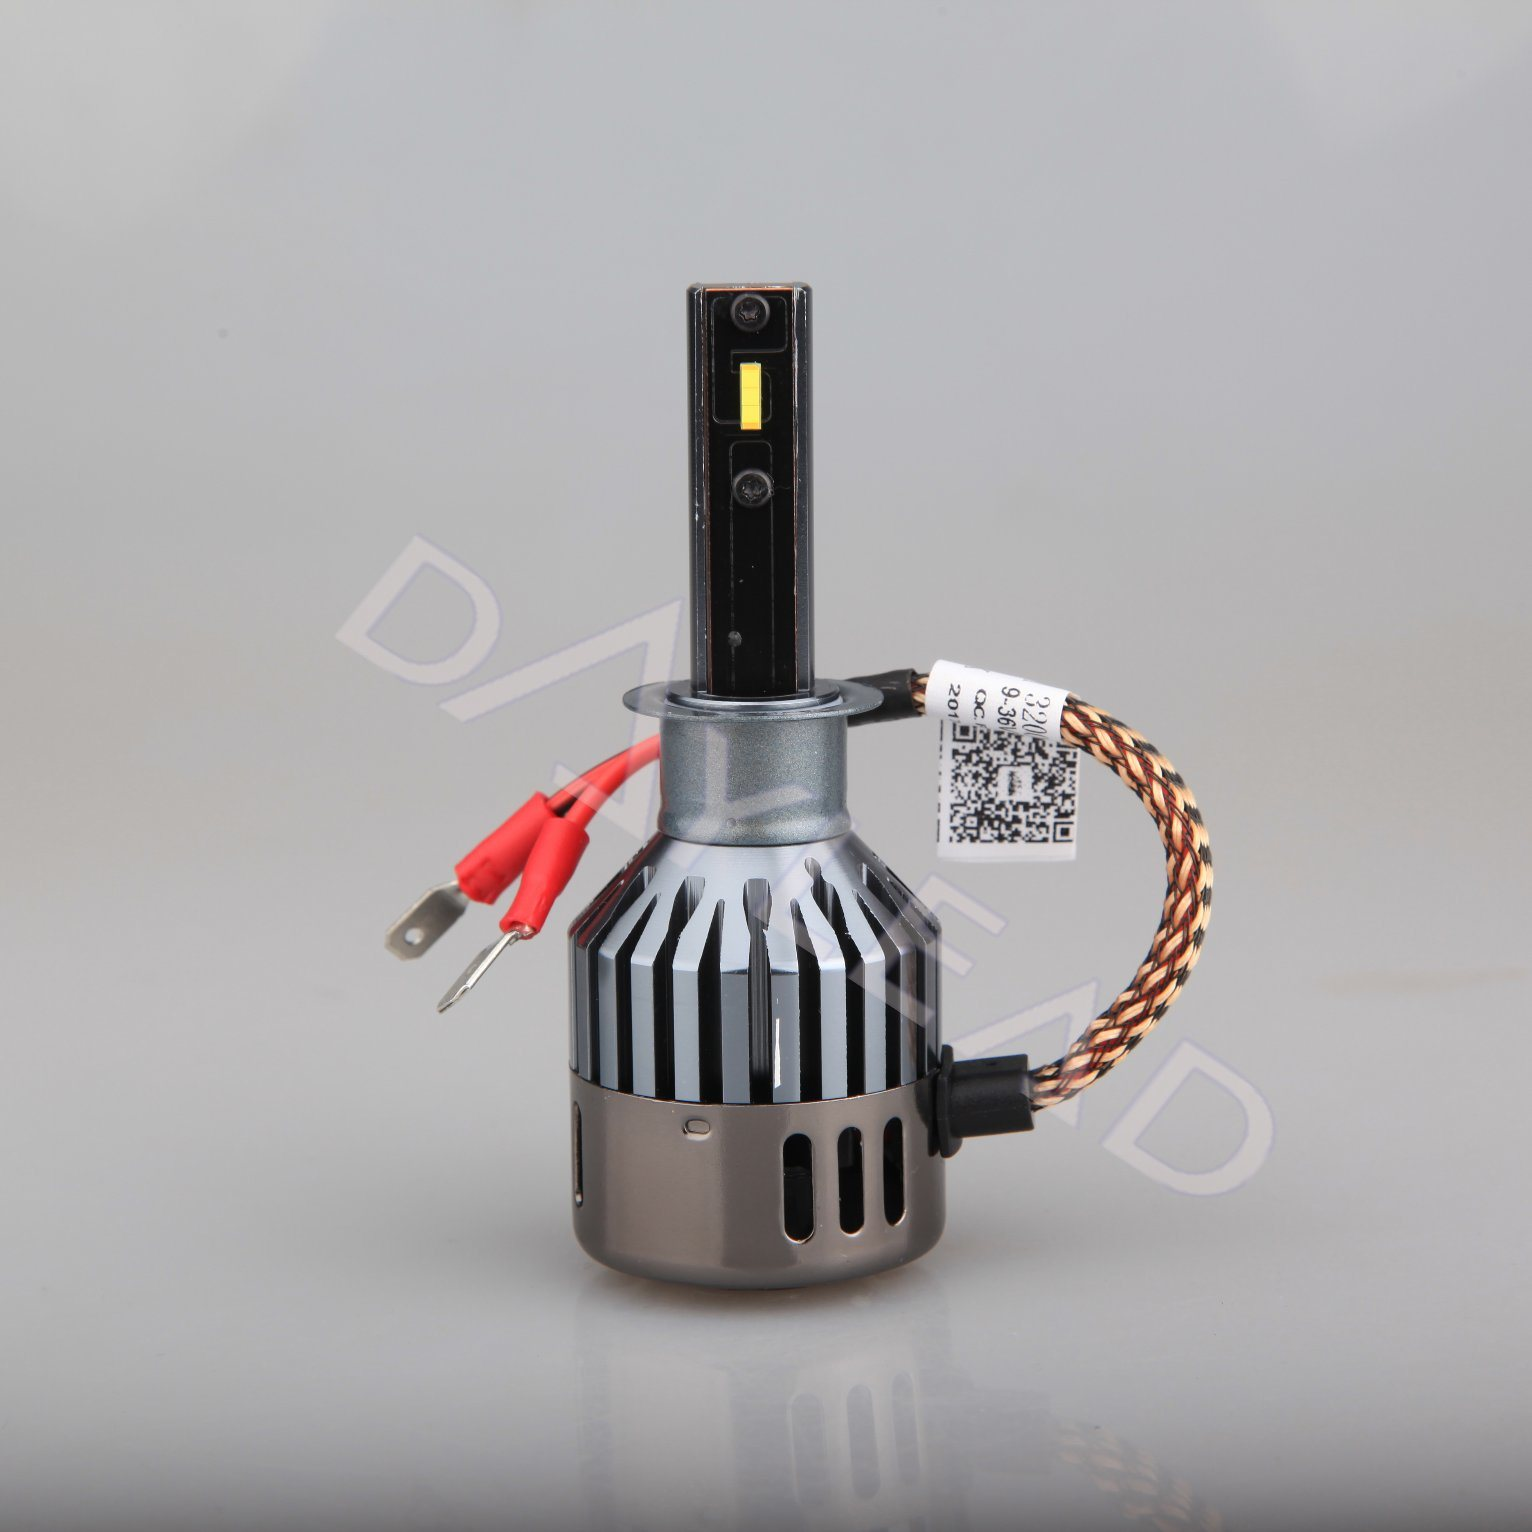 6000k High Quality Portable LED Car Light